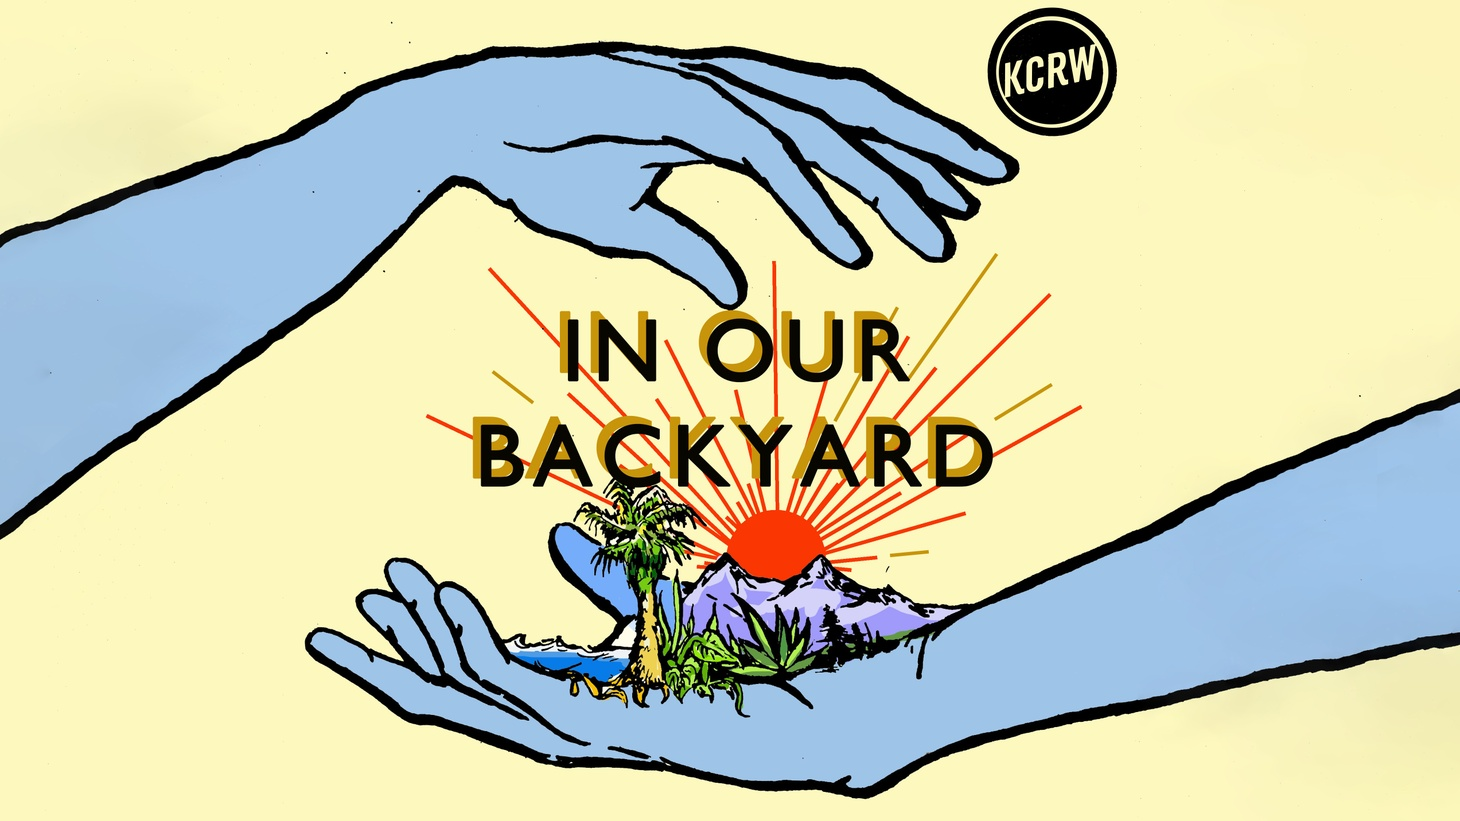 In Our Backyard is a six-part series from Warren Olney that focuses on how climate change is affecting Southern California and how we can respond.